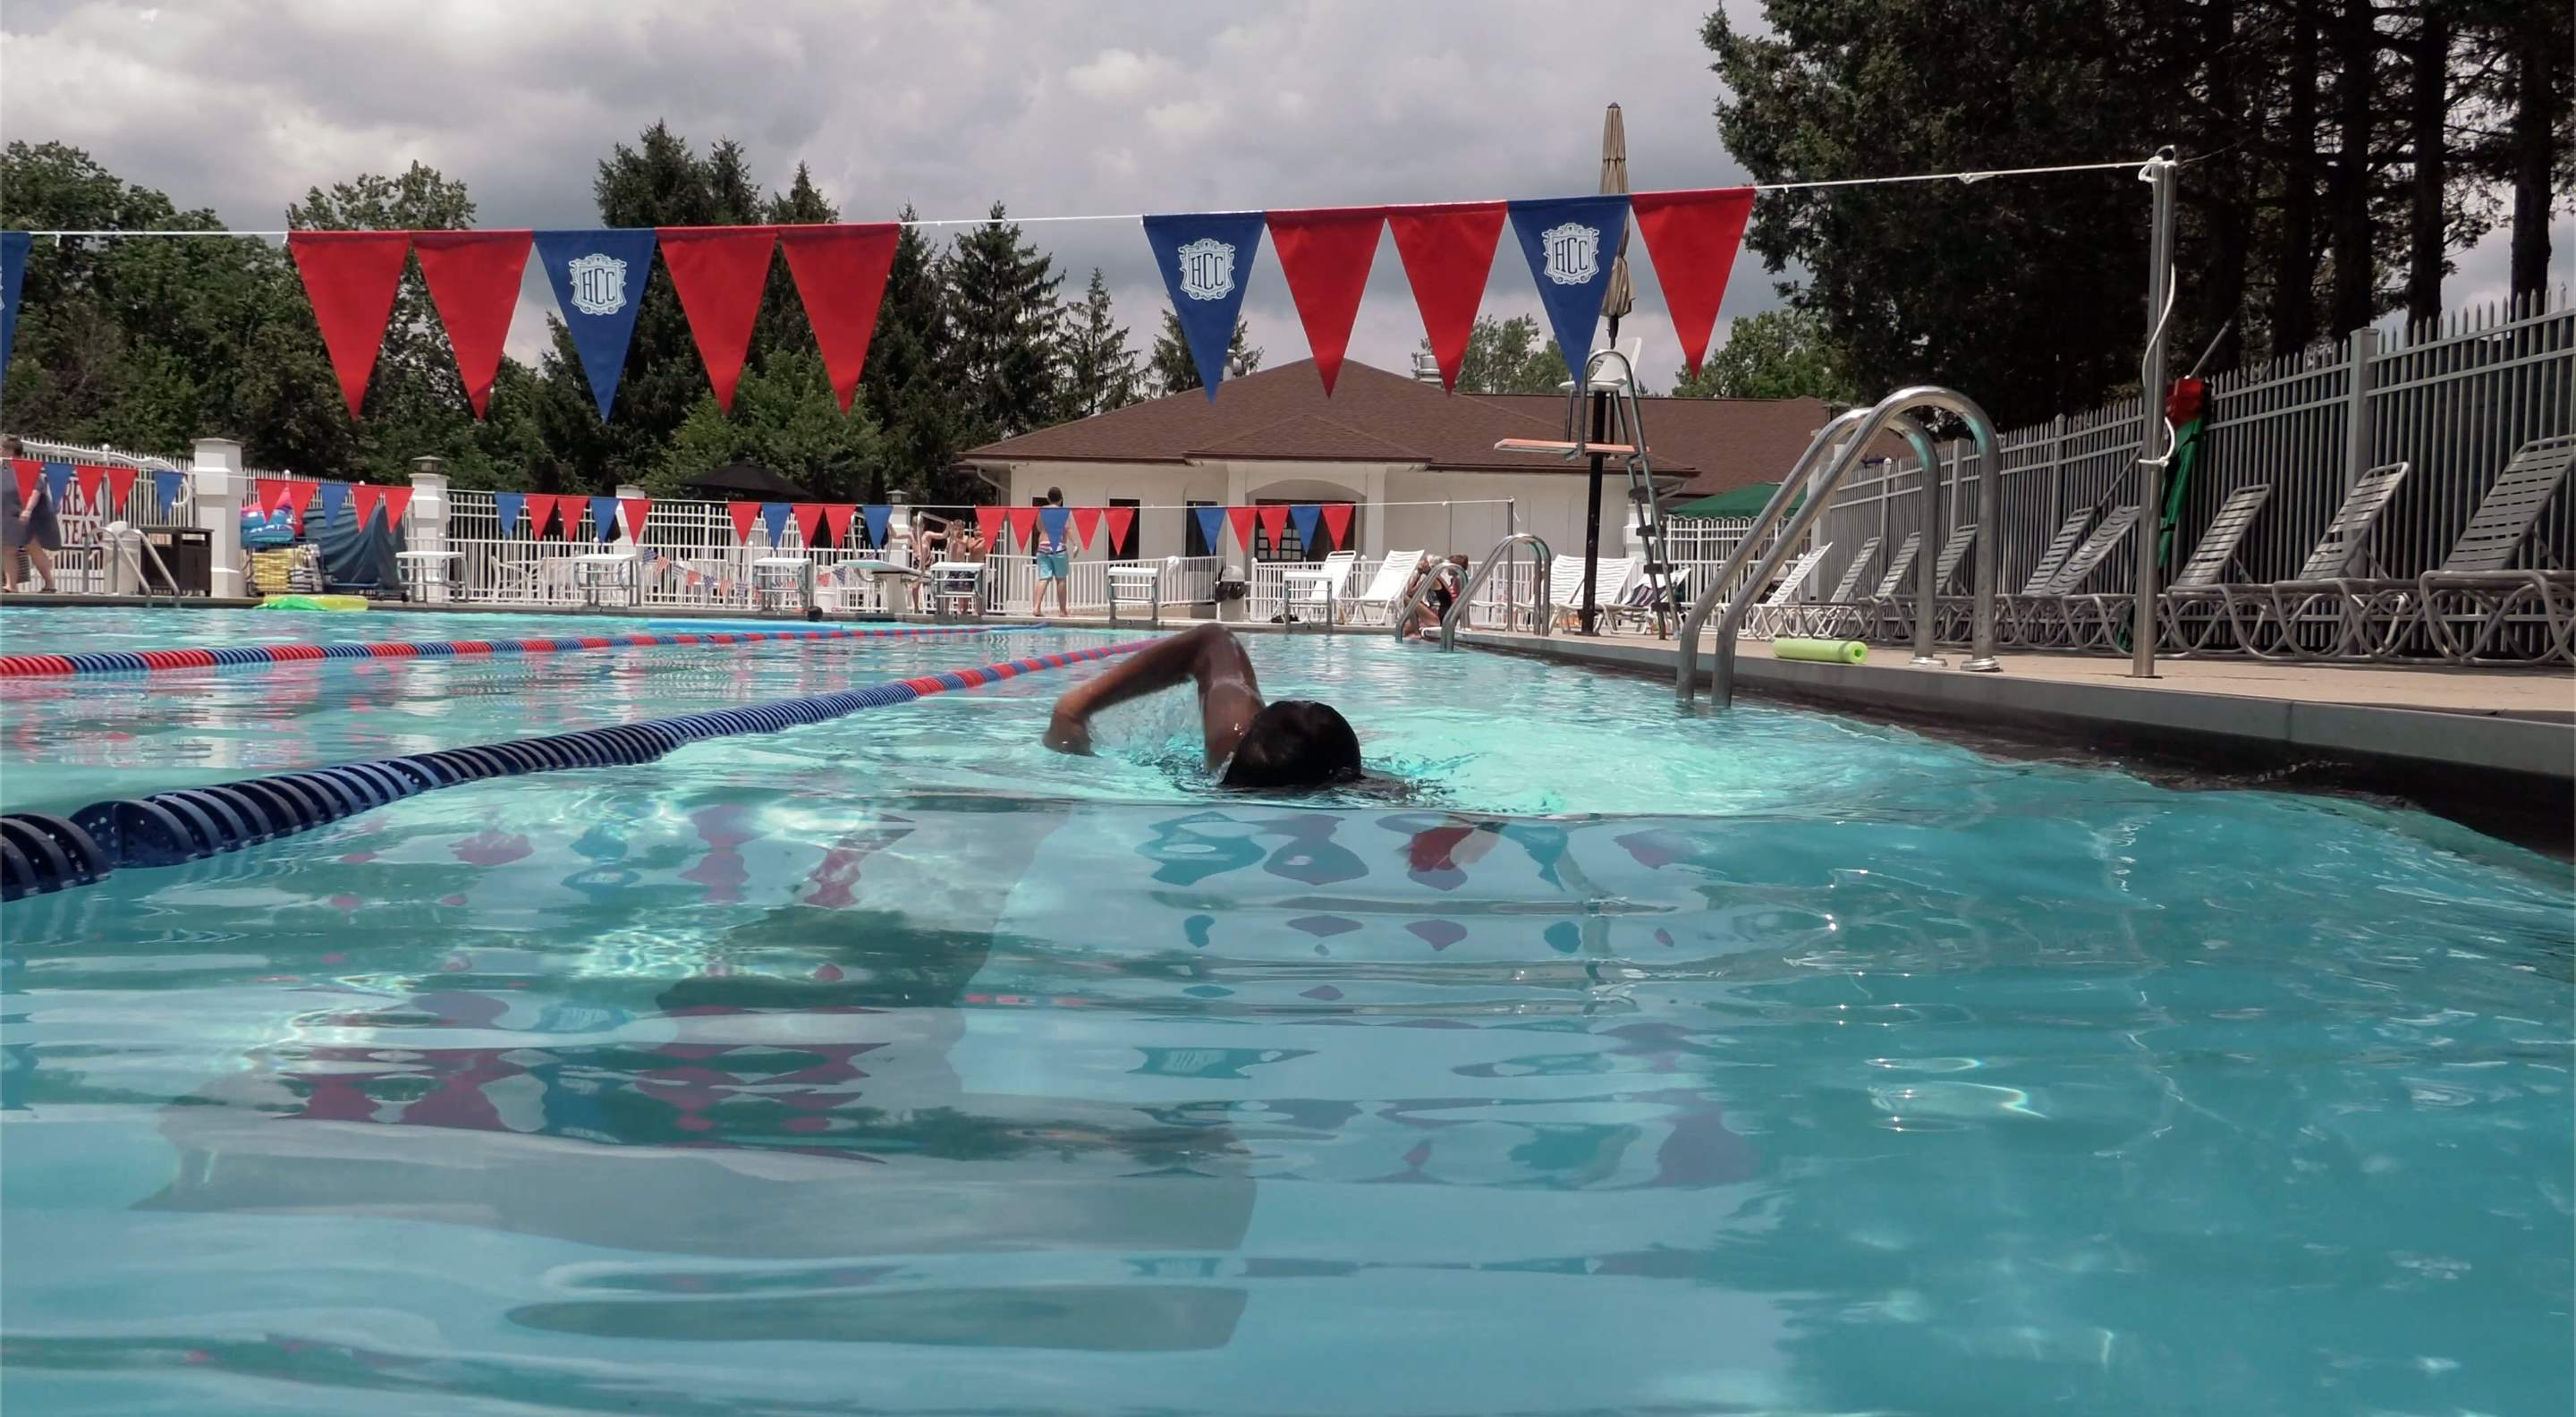 Hillcrest Country Club Indy swimmer + swimming pool photo